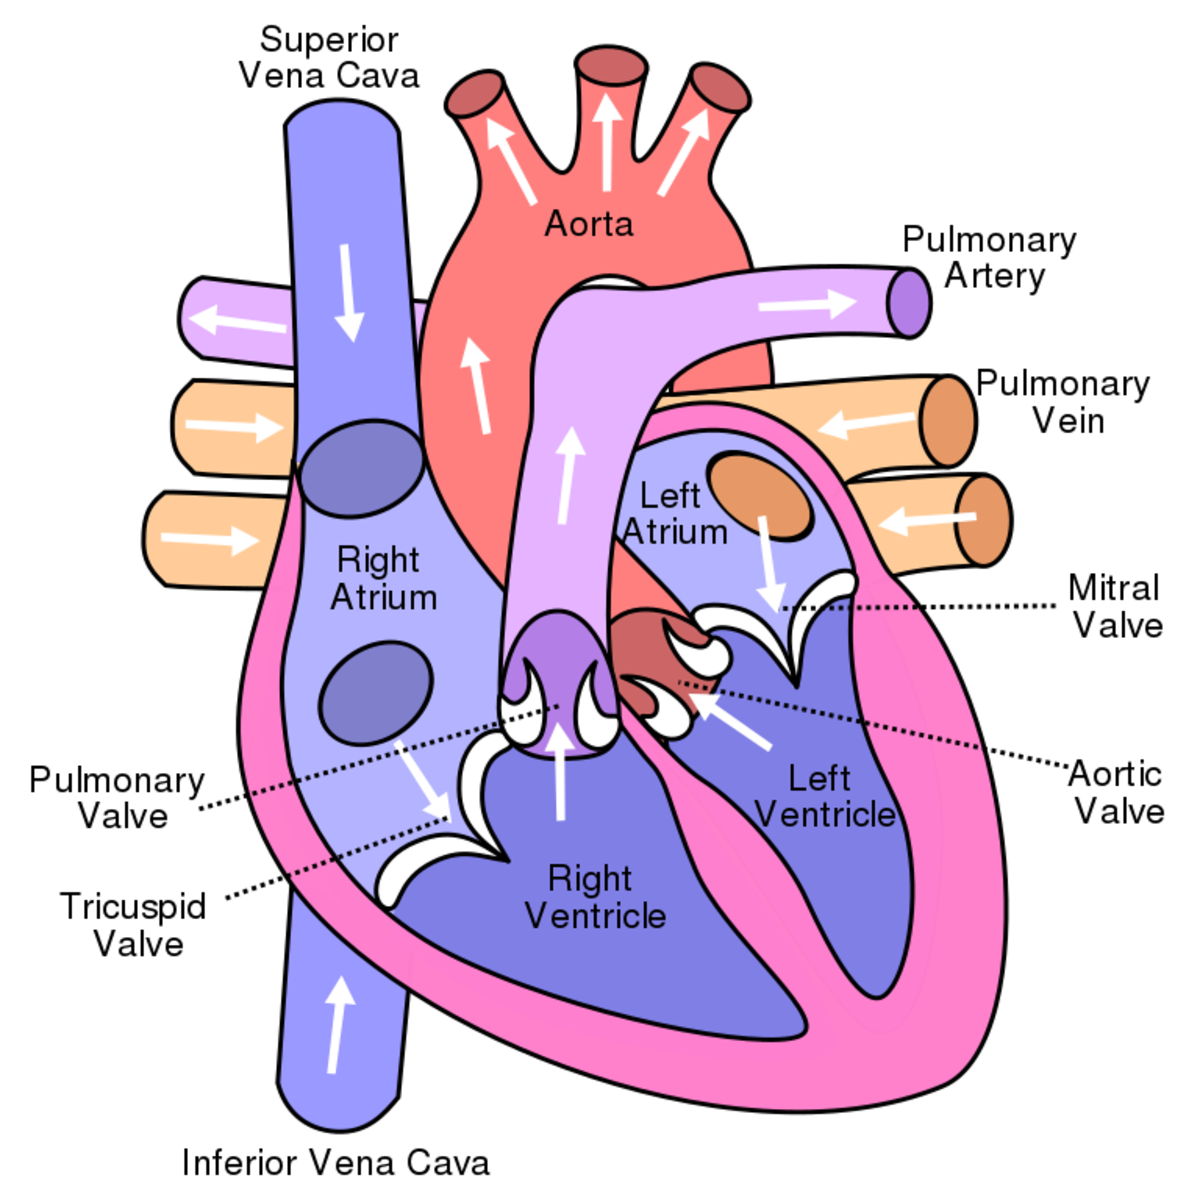 Blood flow in the heart (The right and left sides of the heart are identified from the owner's point of view.)